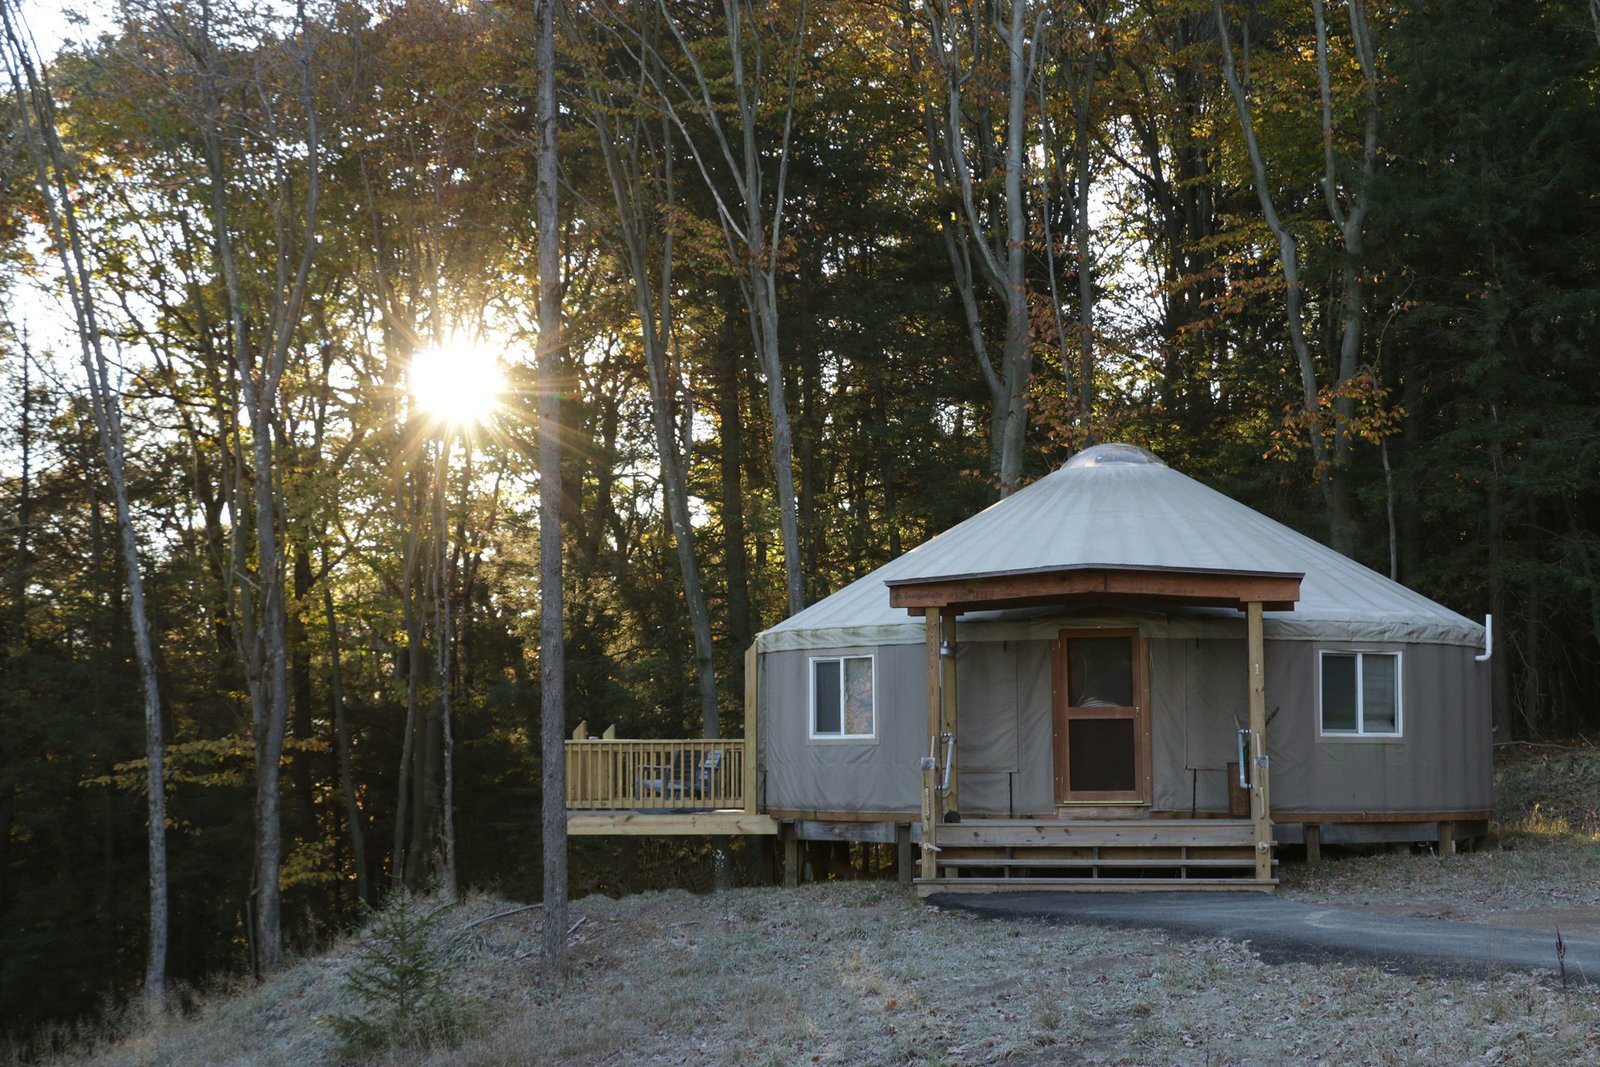 Photo 5 of 10 in 9 Yurt Vacation Rentals For the Modern Alternative Camper